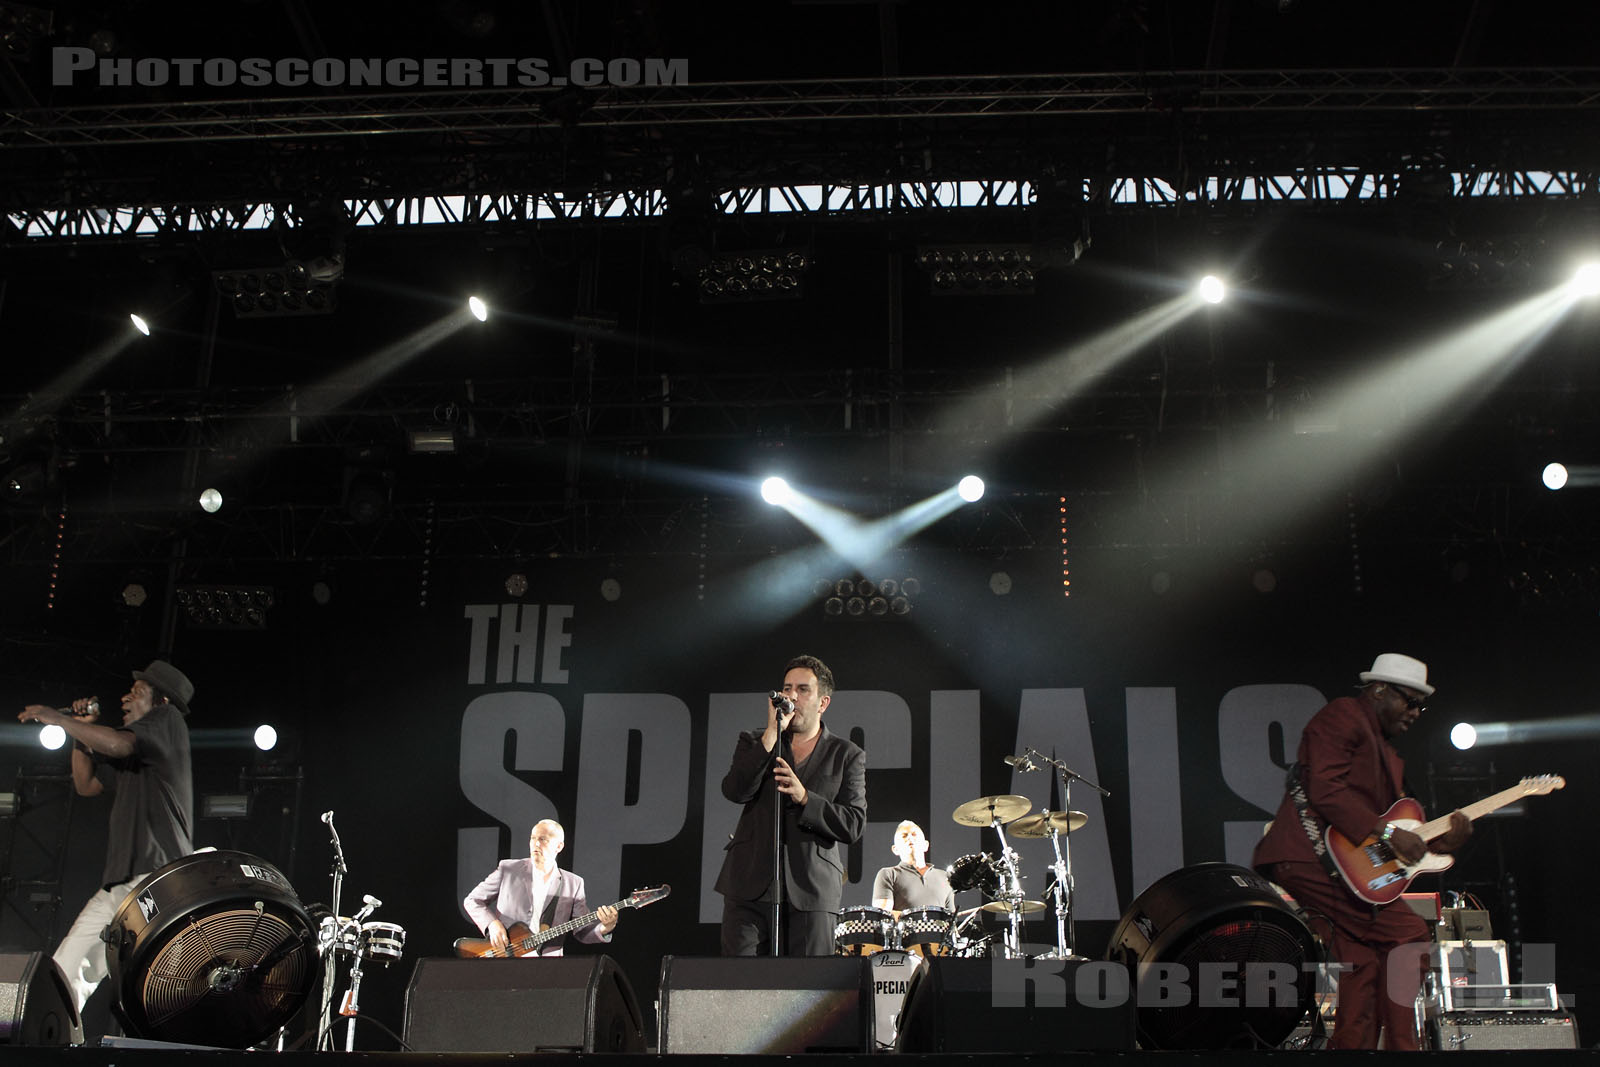 THE SPECIALS - 2010-07-03 - BELFORT - Presqu'ile du Malsaucy